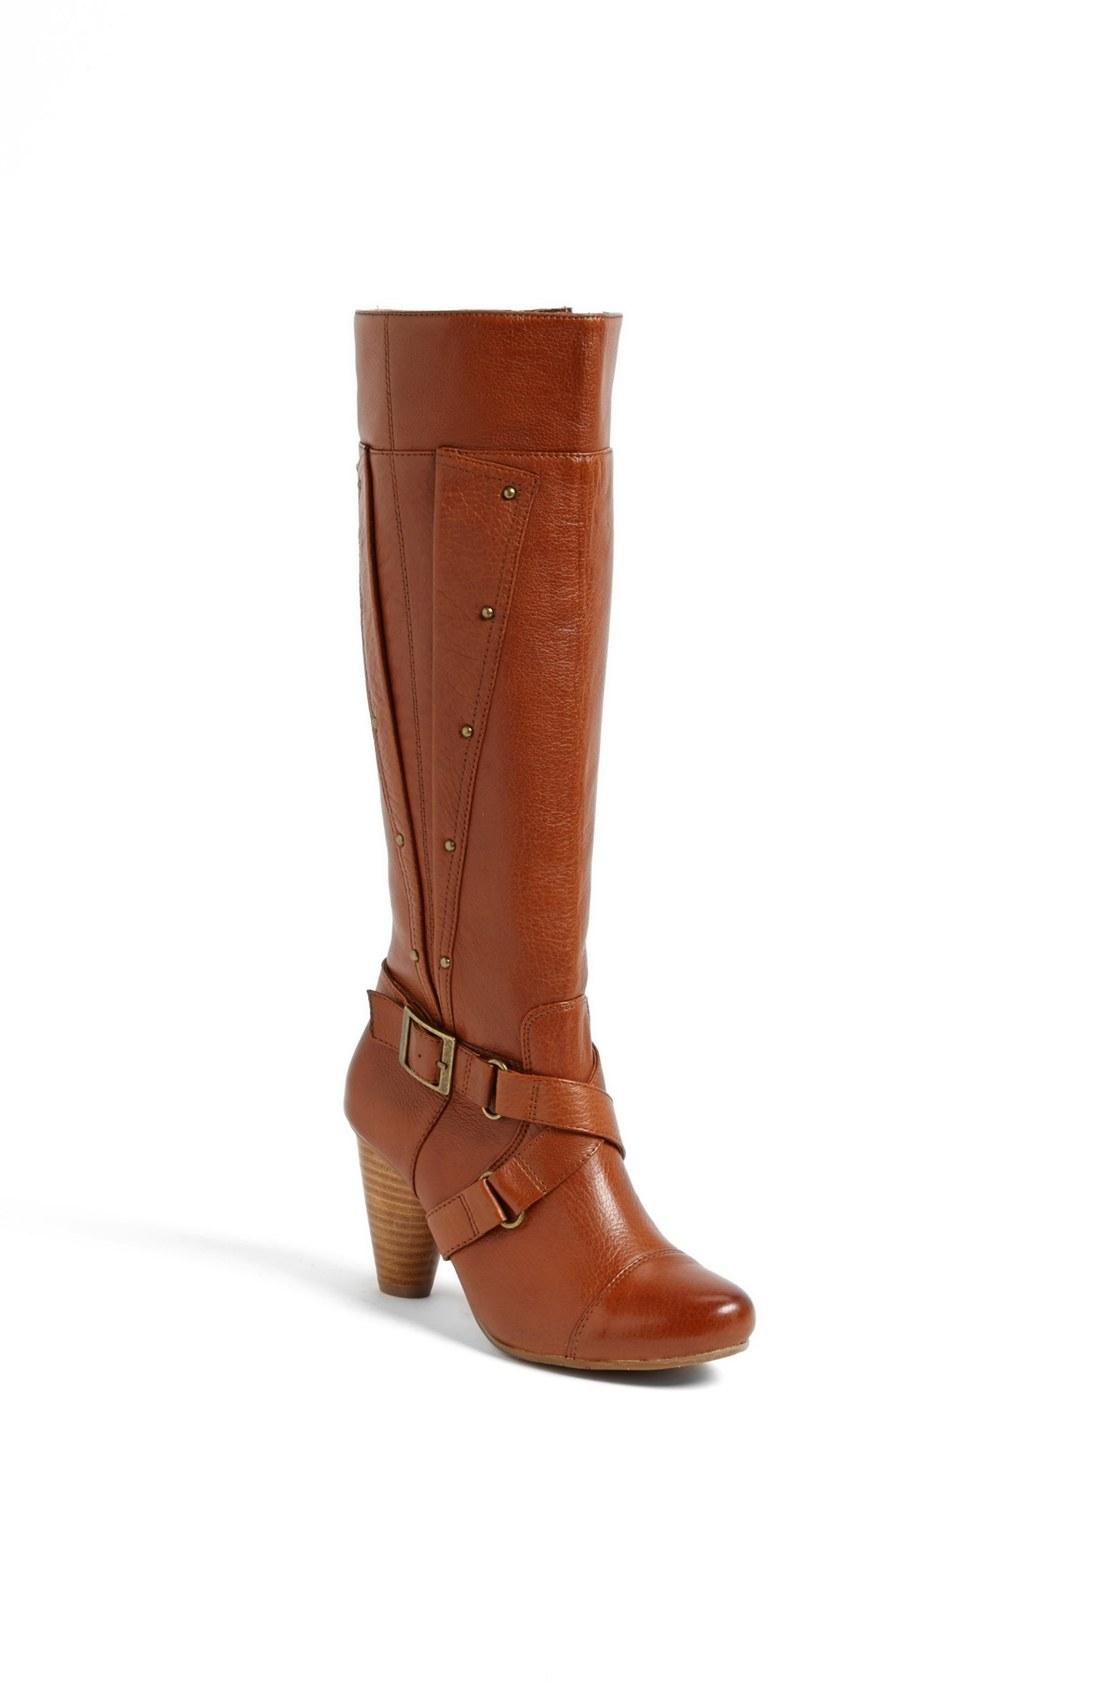 Reserve shoes online from the best selection of mens dress shoes and boots for women, and try them on locally before you buy with hosting350.tk